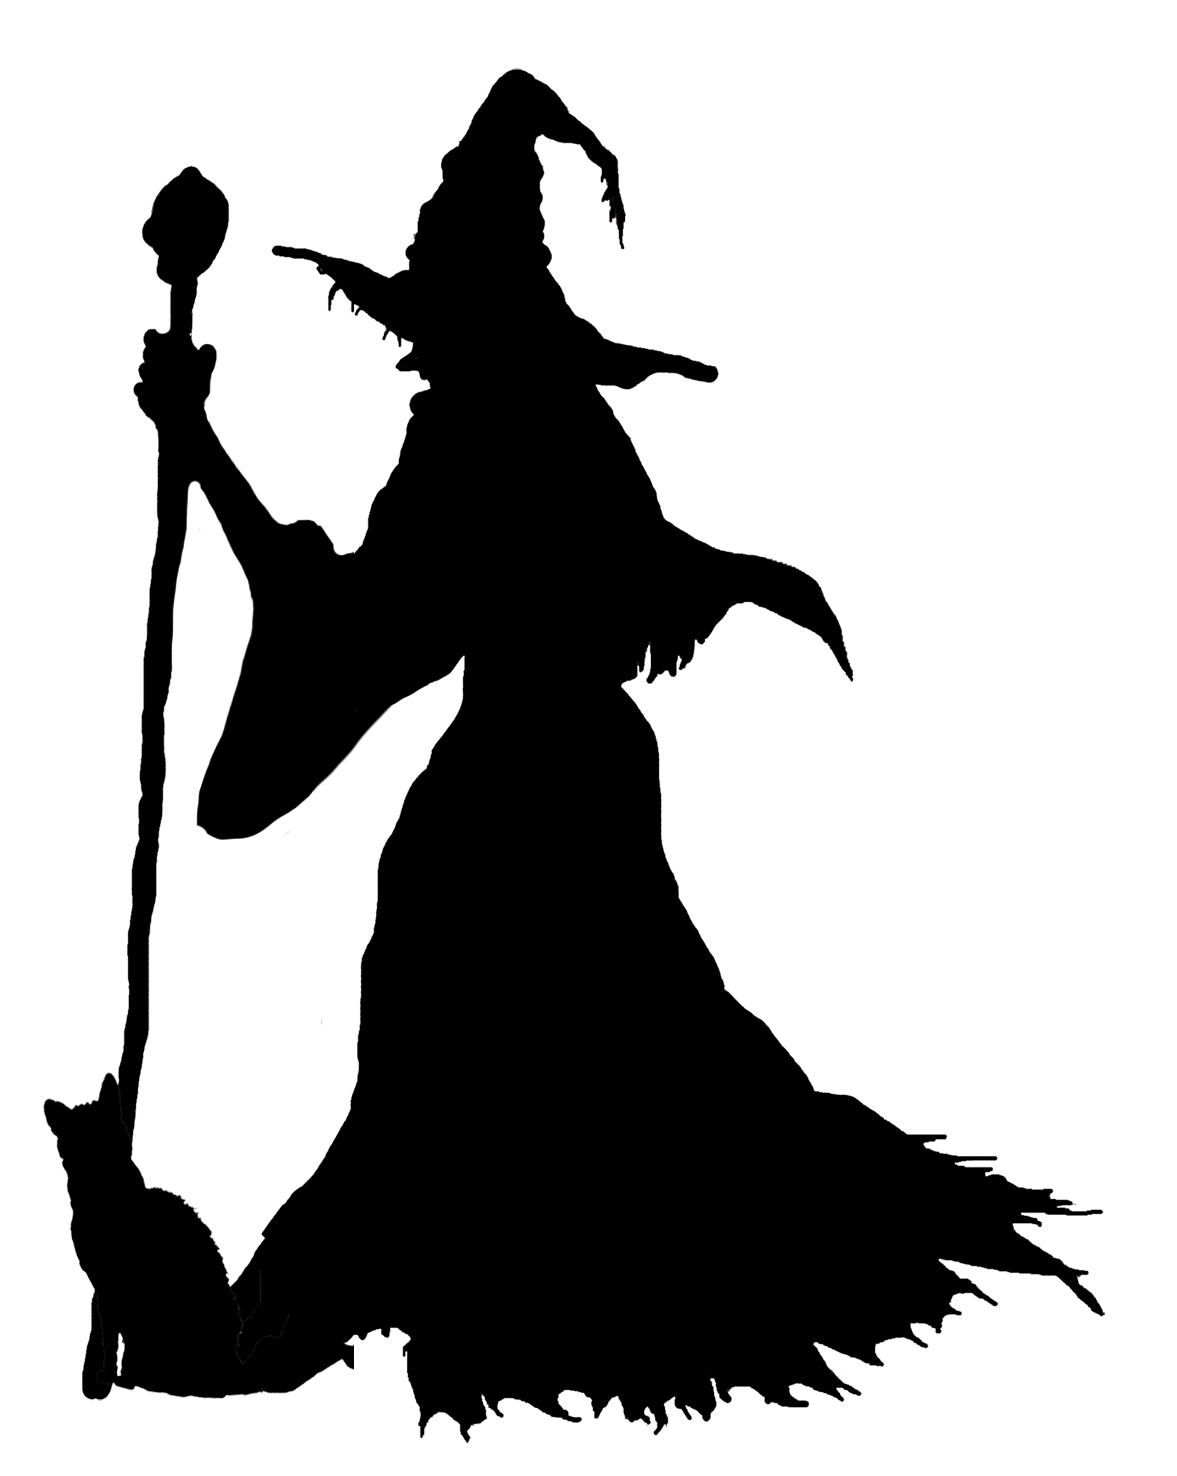 Wizard silhouette png. Witches at getdrawings com